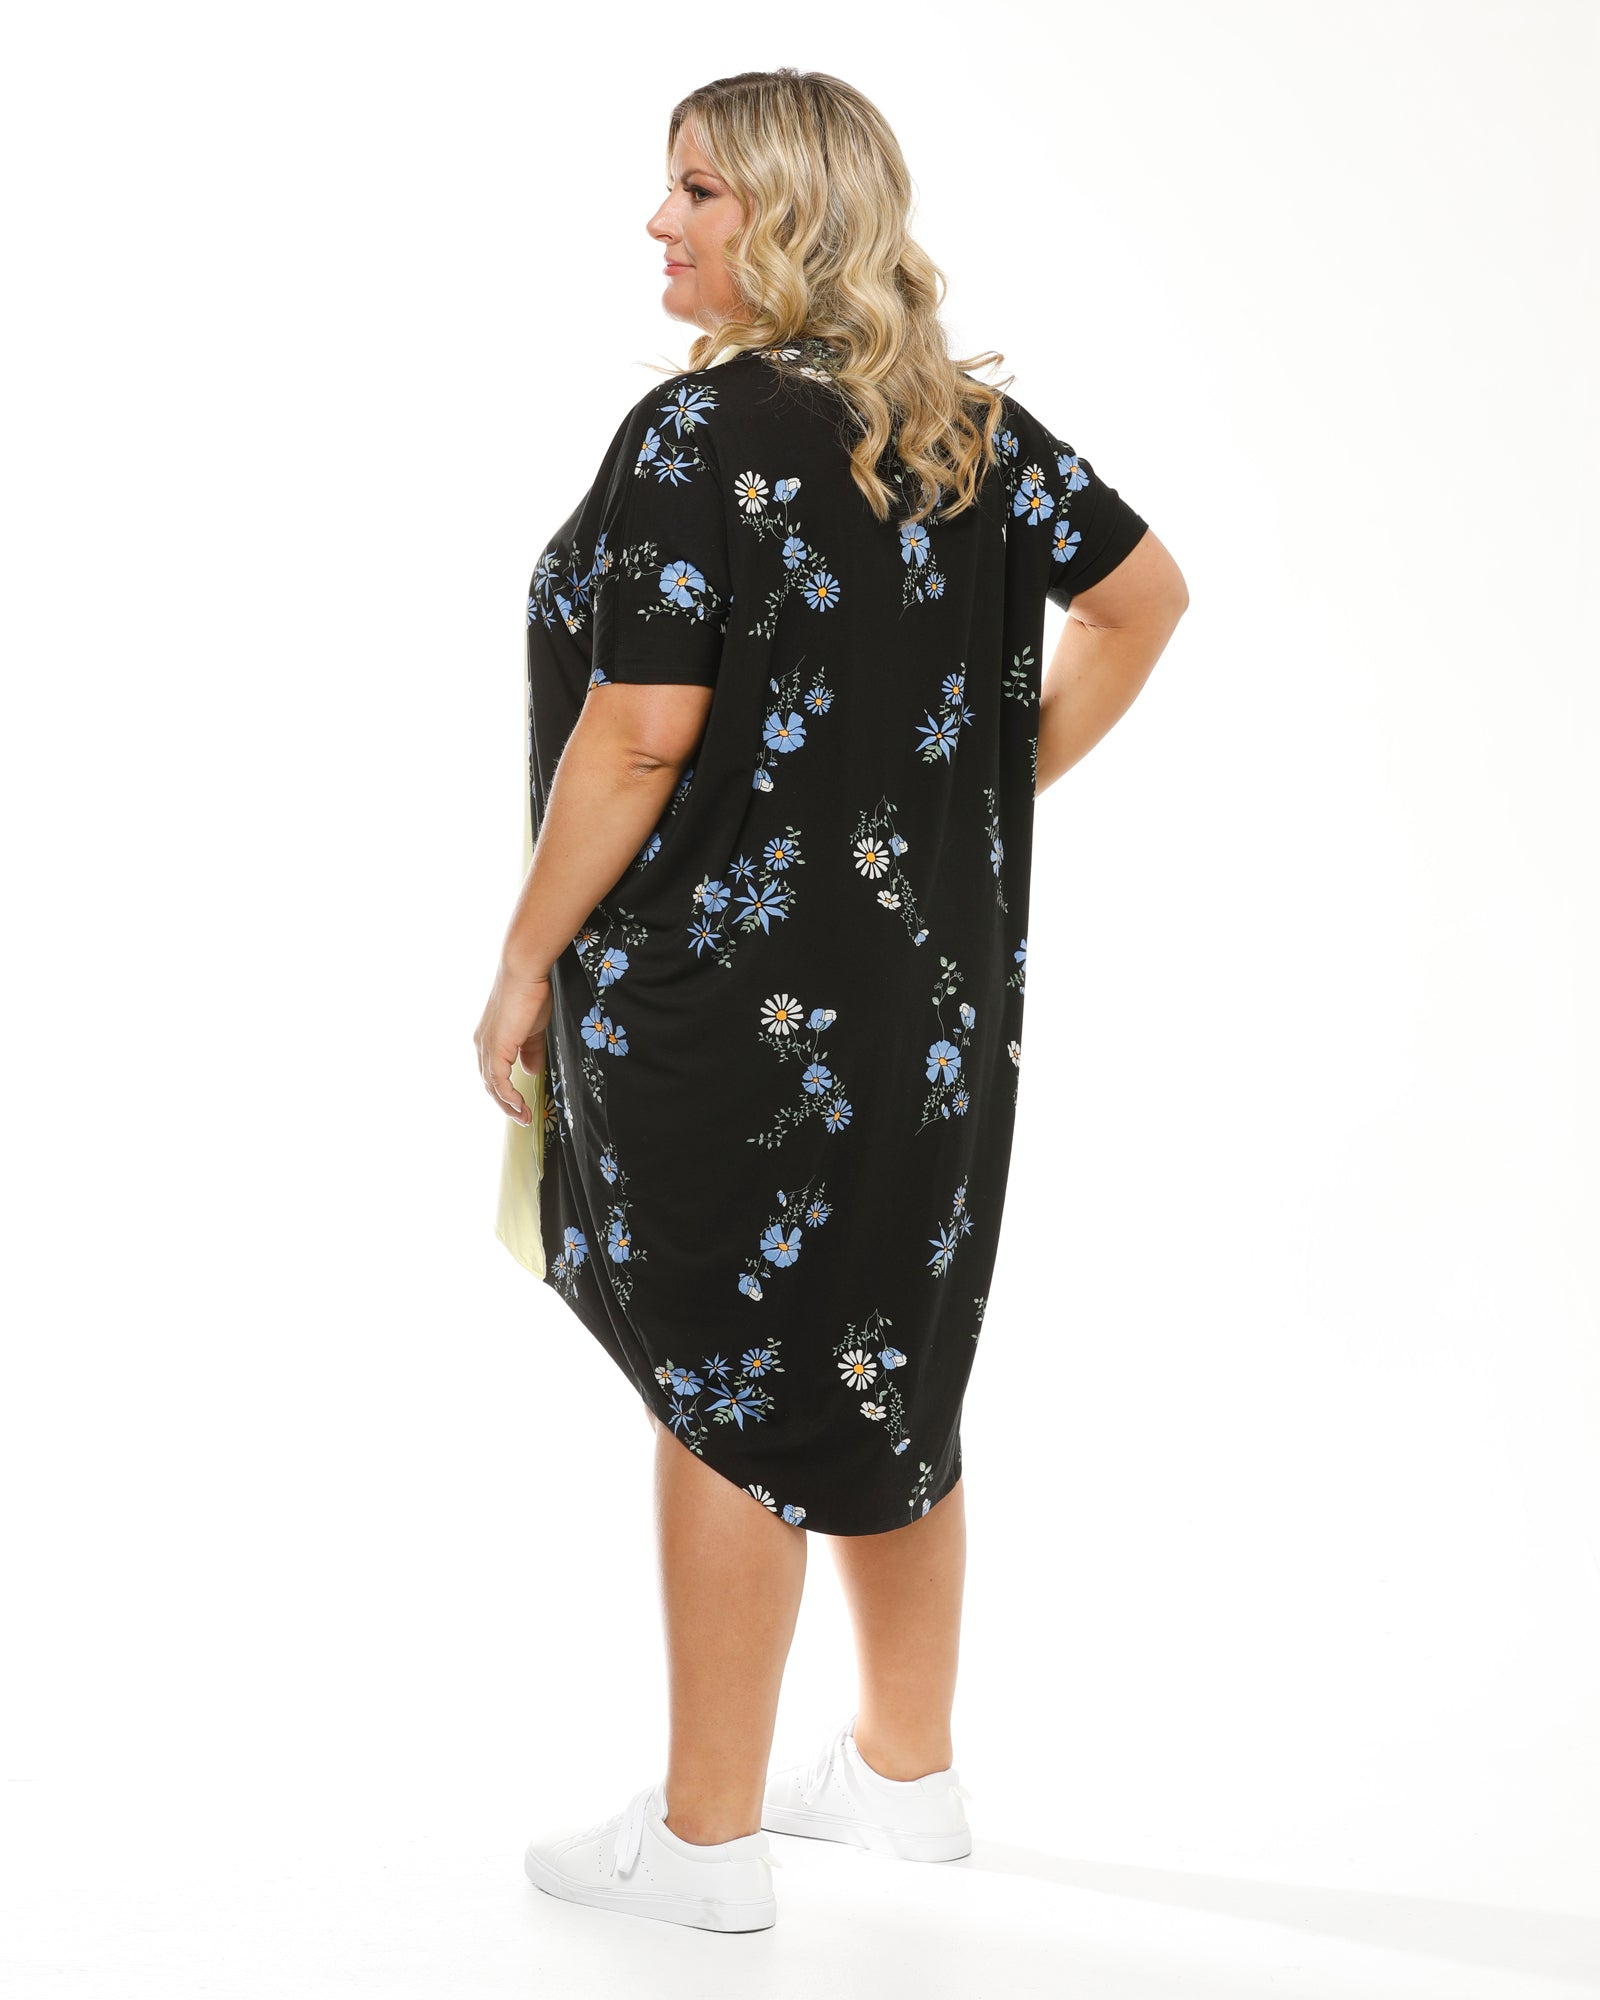 Bamboo Sybil Dress - Floral